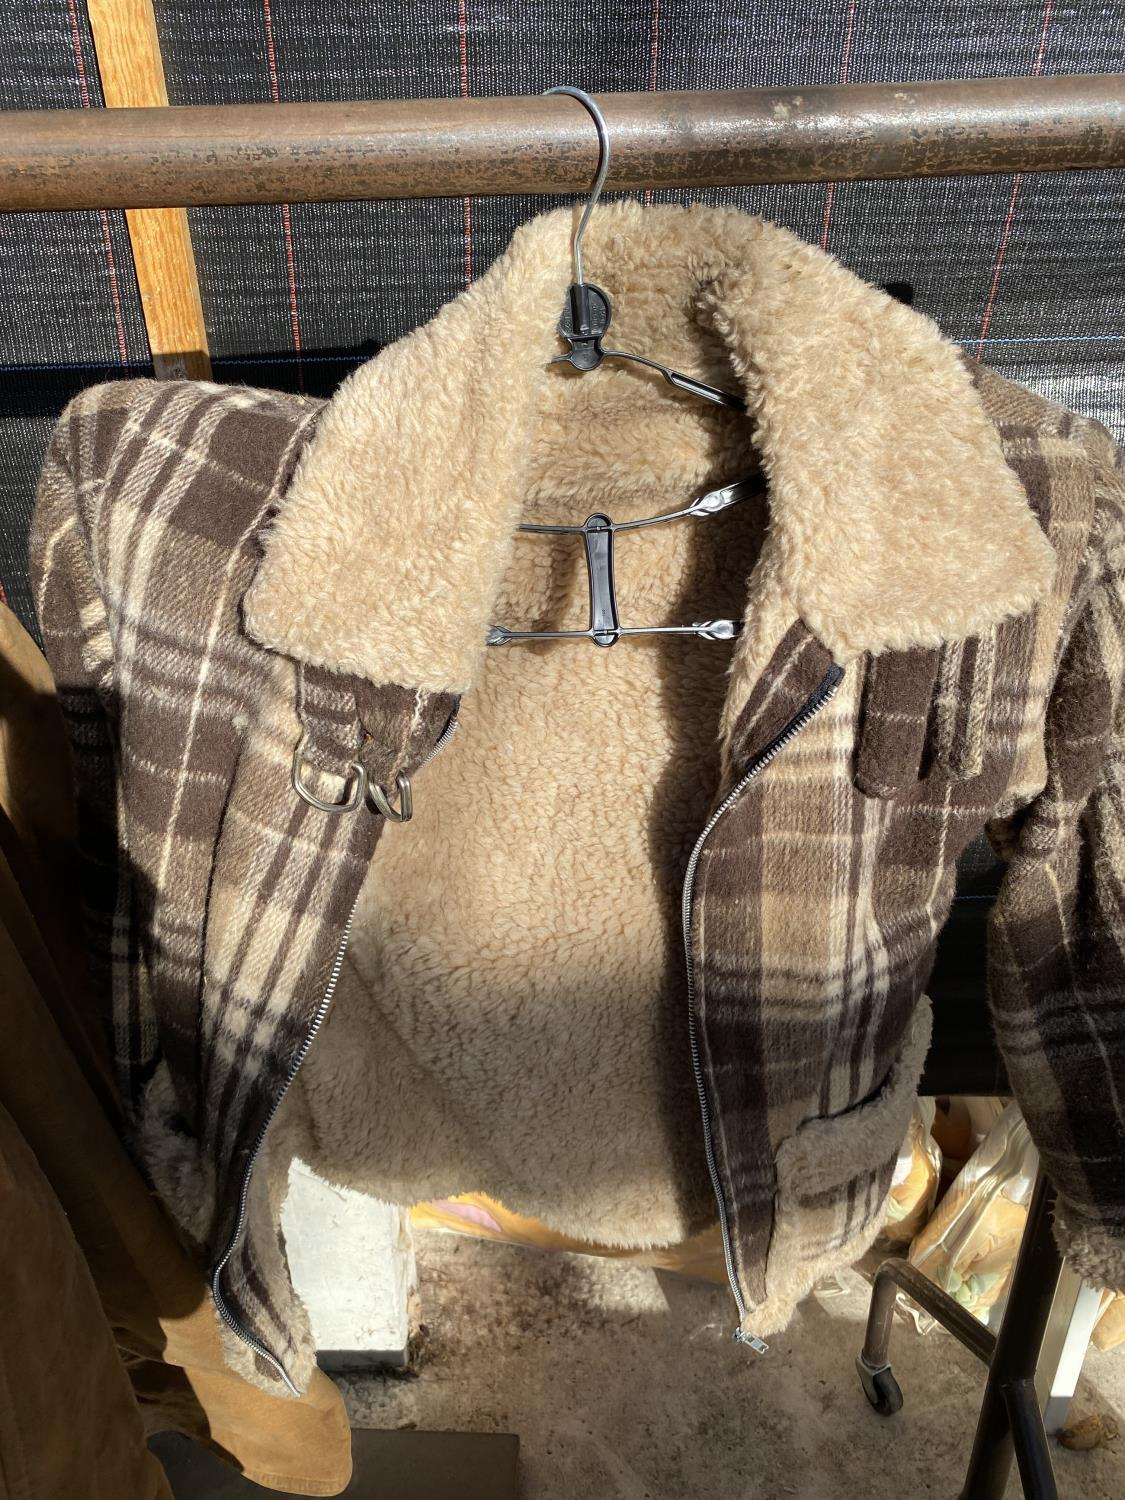 A GROUP OF FOUR COATS AND JACKETS TO INCLUDE A SHEEP SKIN COAT ETC - Image 7 of 7